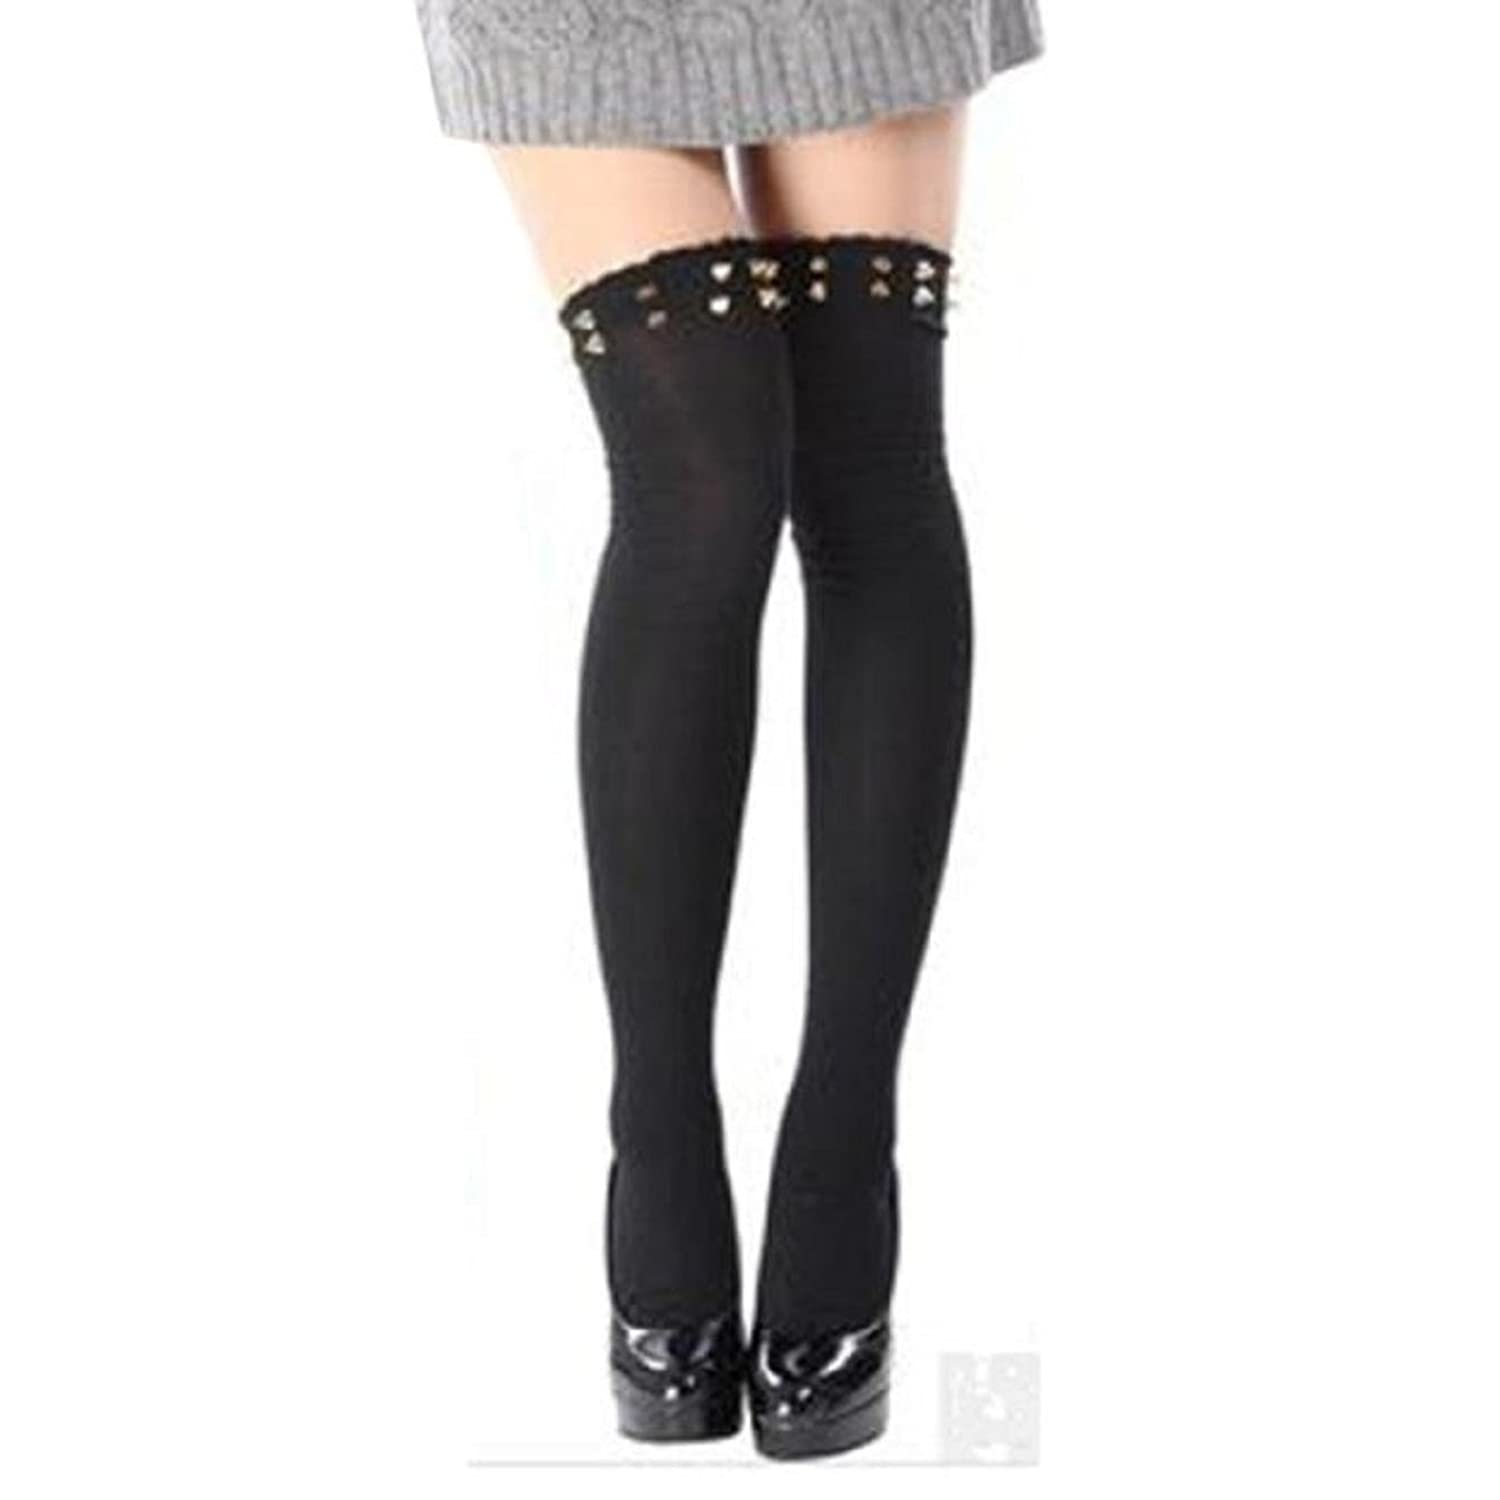 ABC® 2015 New Women Long Over Knee Thigh-High Socks Rivet Stocking Boot Socks